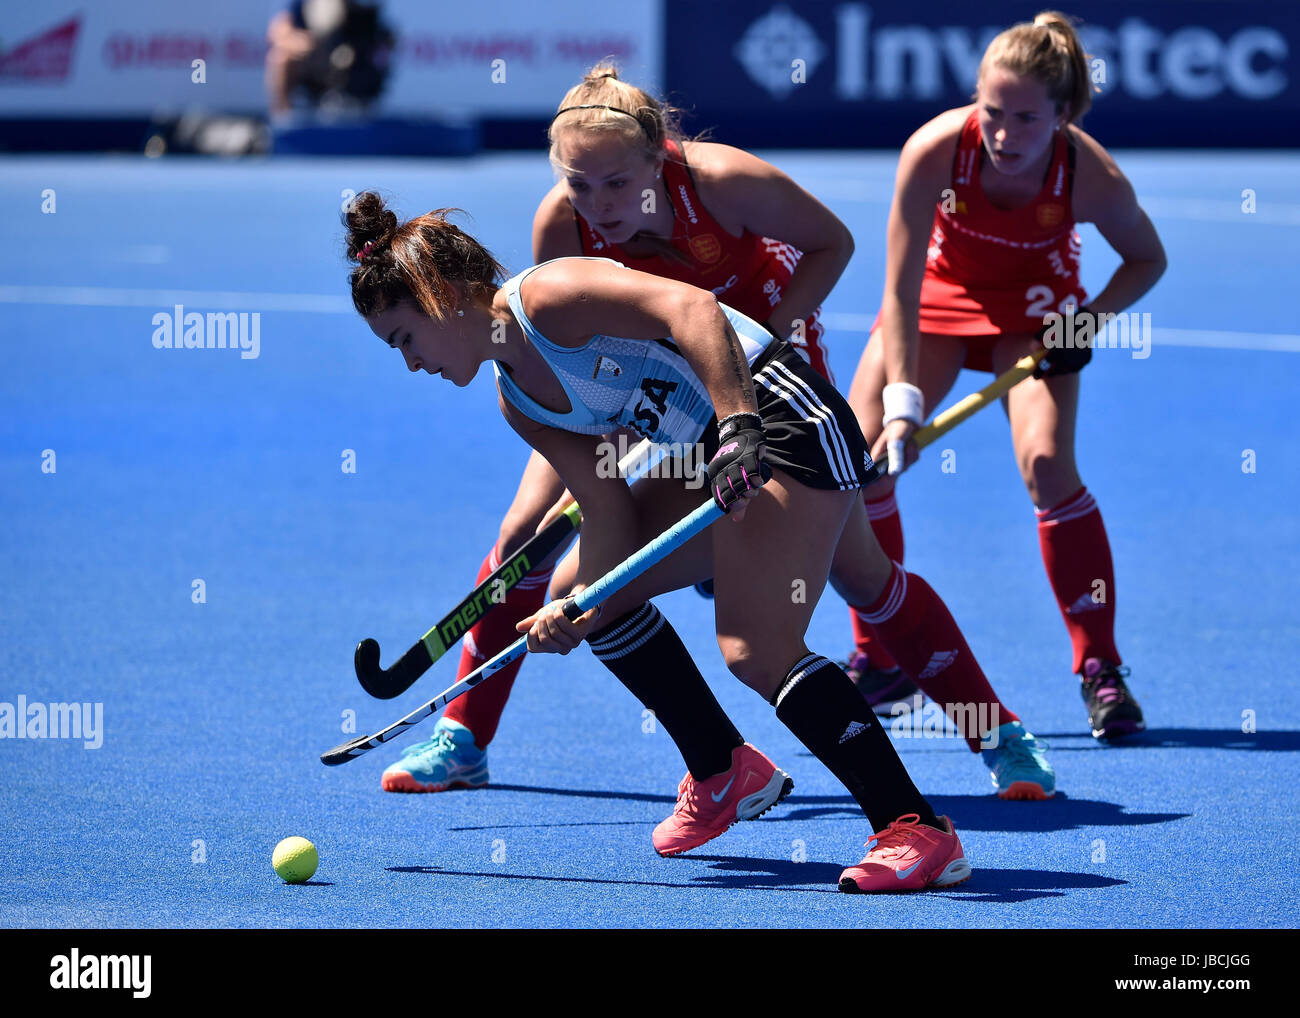 LONDON ENGLAND - June 10, 2017: Maria Granatto (ARG) tries blocking Anna Toman (ENG) getting the ball during 2017 - Stock Image